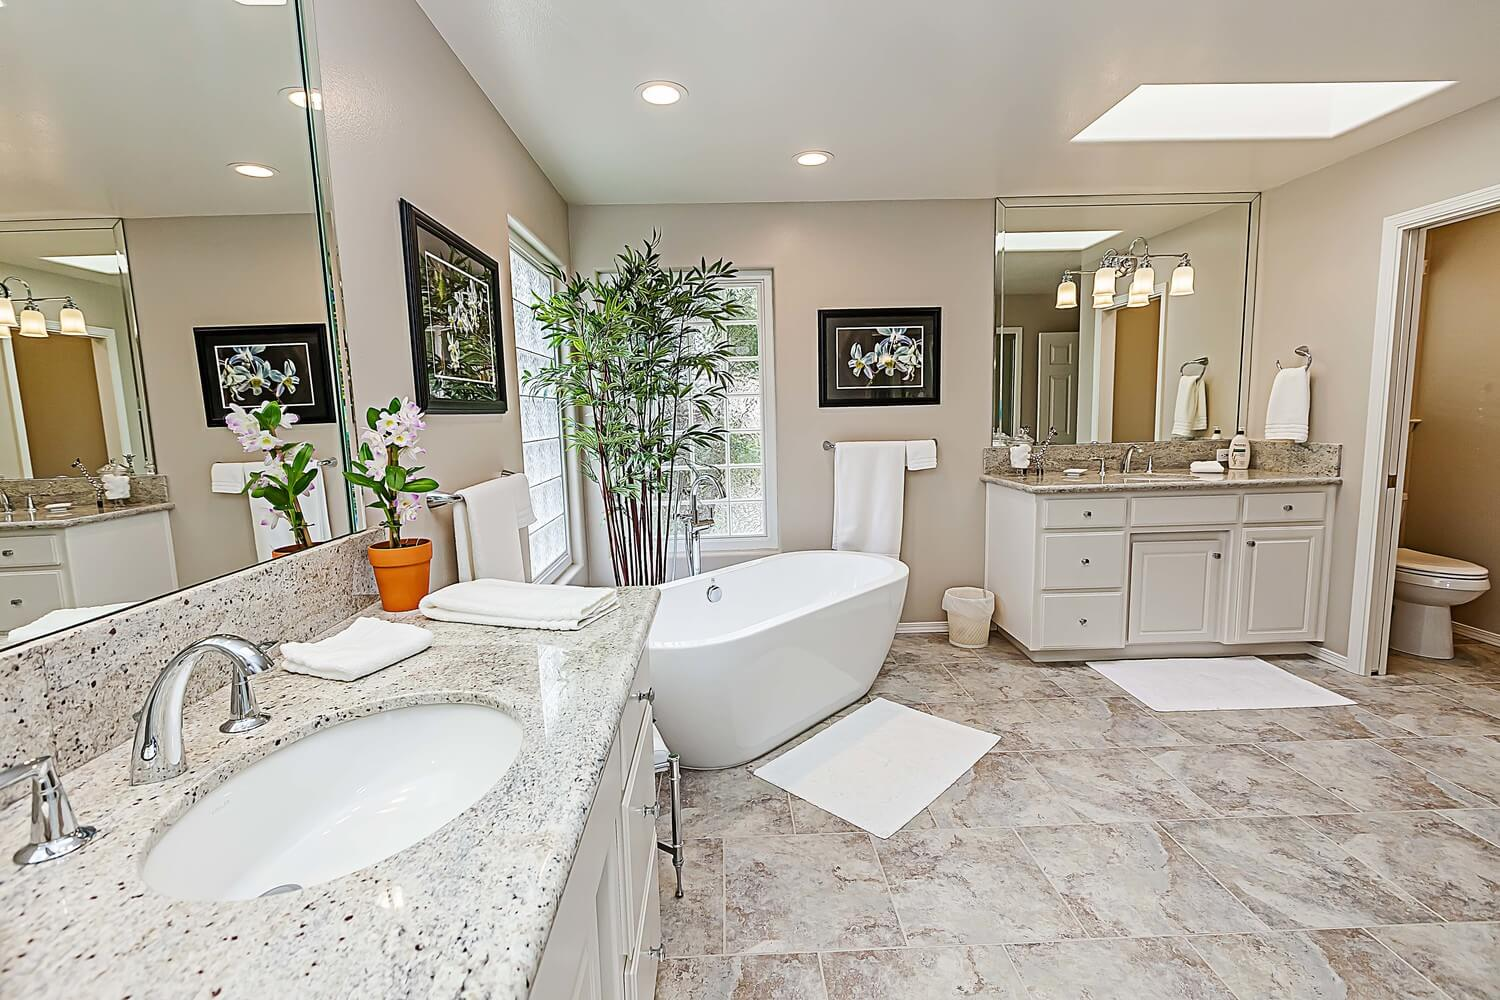 Bathroom Remodel Software Central Areas To Monitor In Bathroom Renovation Kitchen Remodeling